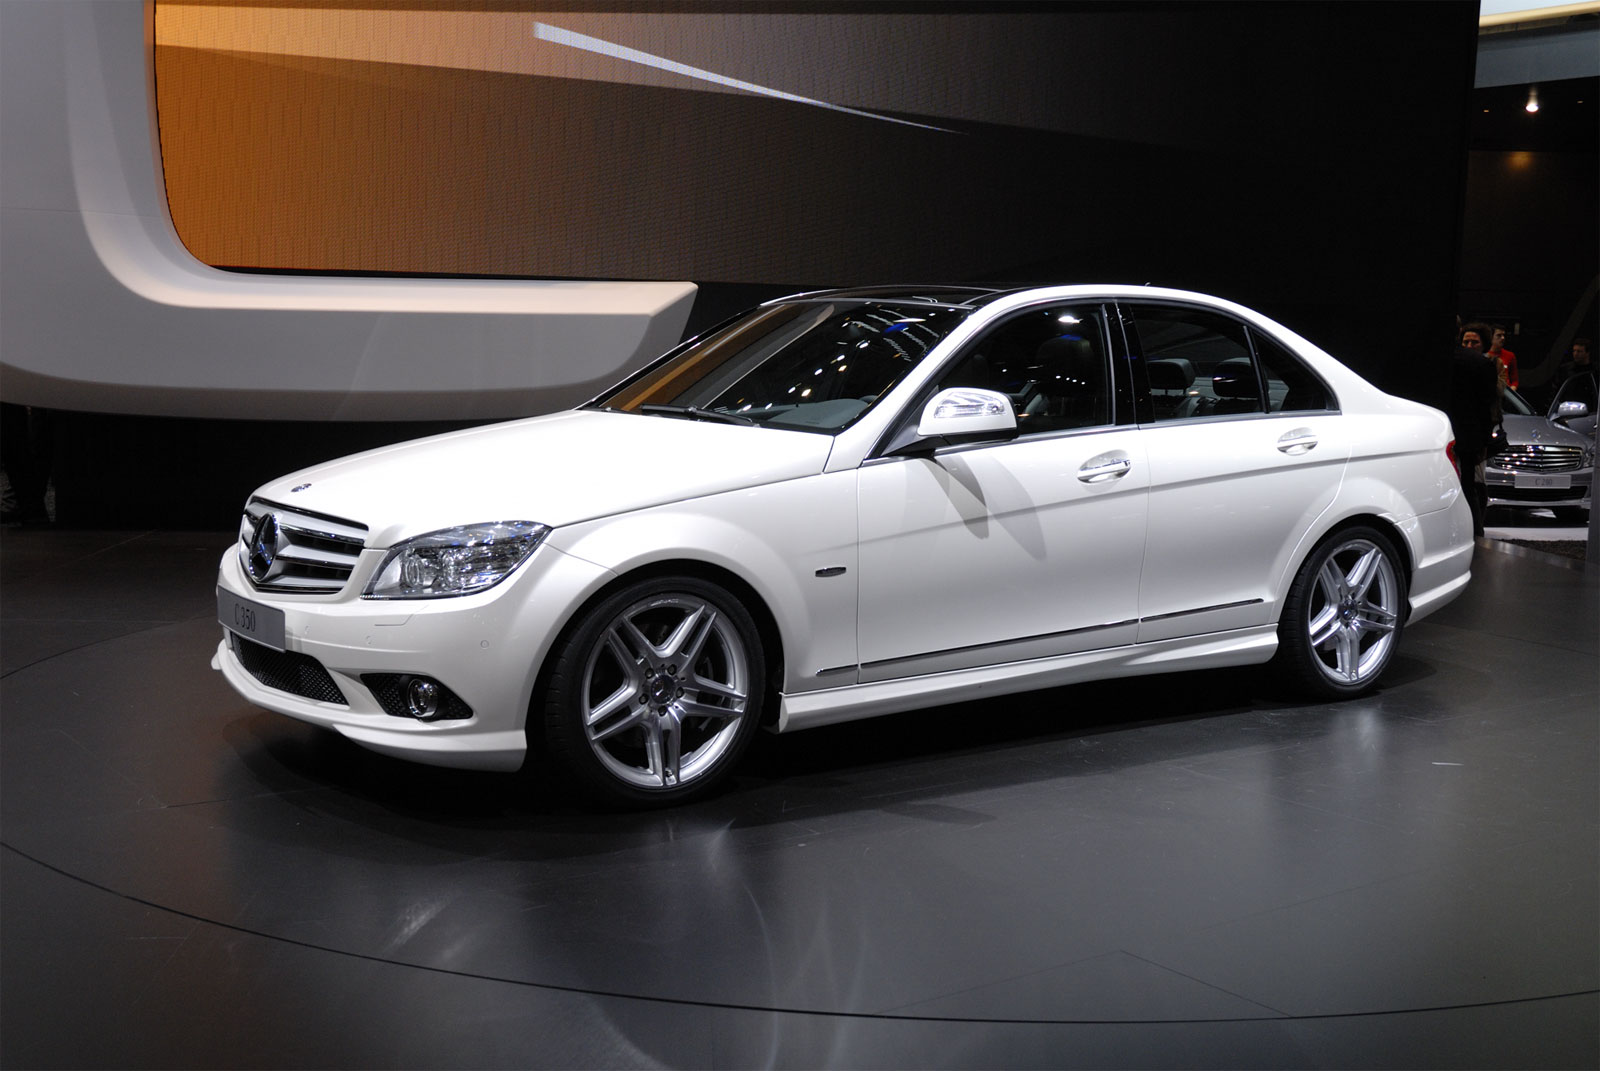 Mercedes benz c 350 technical details history photos on for Mercedes benz 350 c